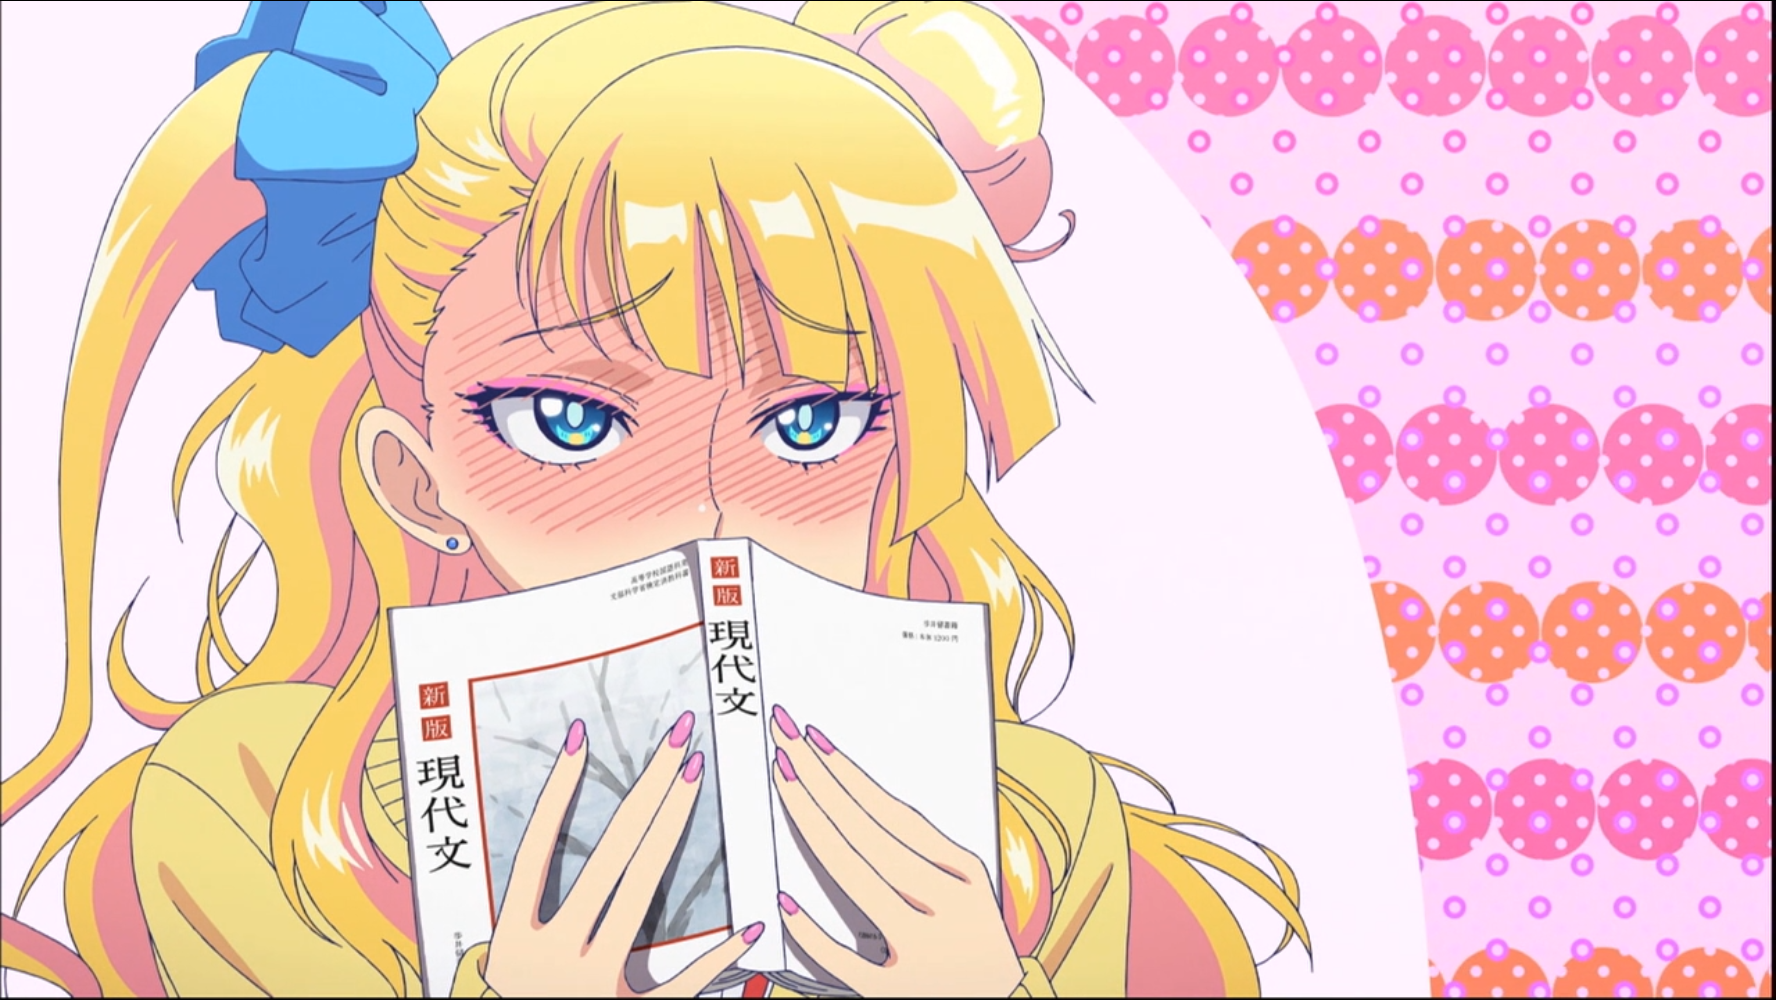 Galko is embarrassed by a romantic scene while reading aloud in Modern Japanese Literature class in a scene from the 2016 Please tell me! Galko-chan TV anime.